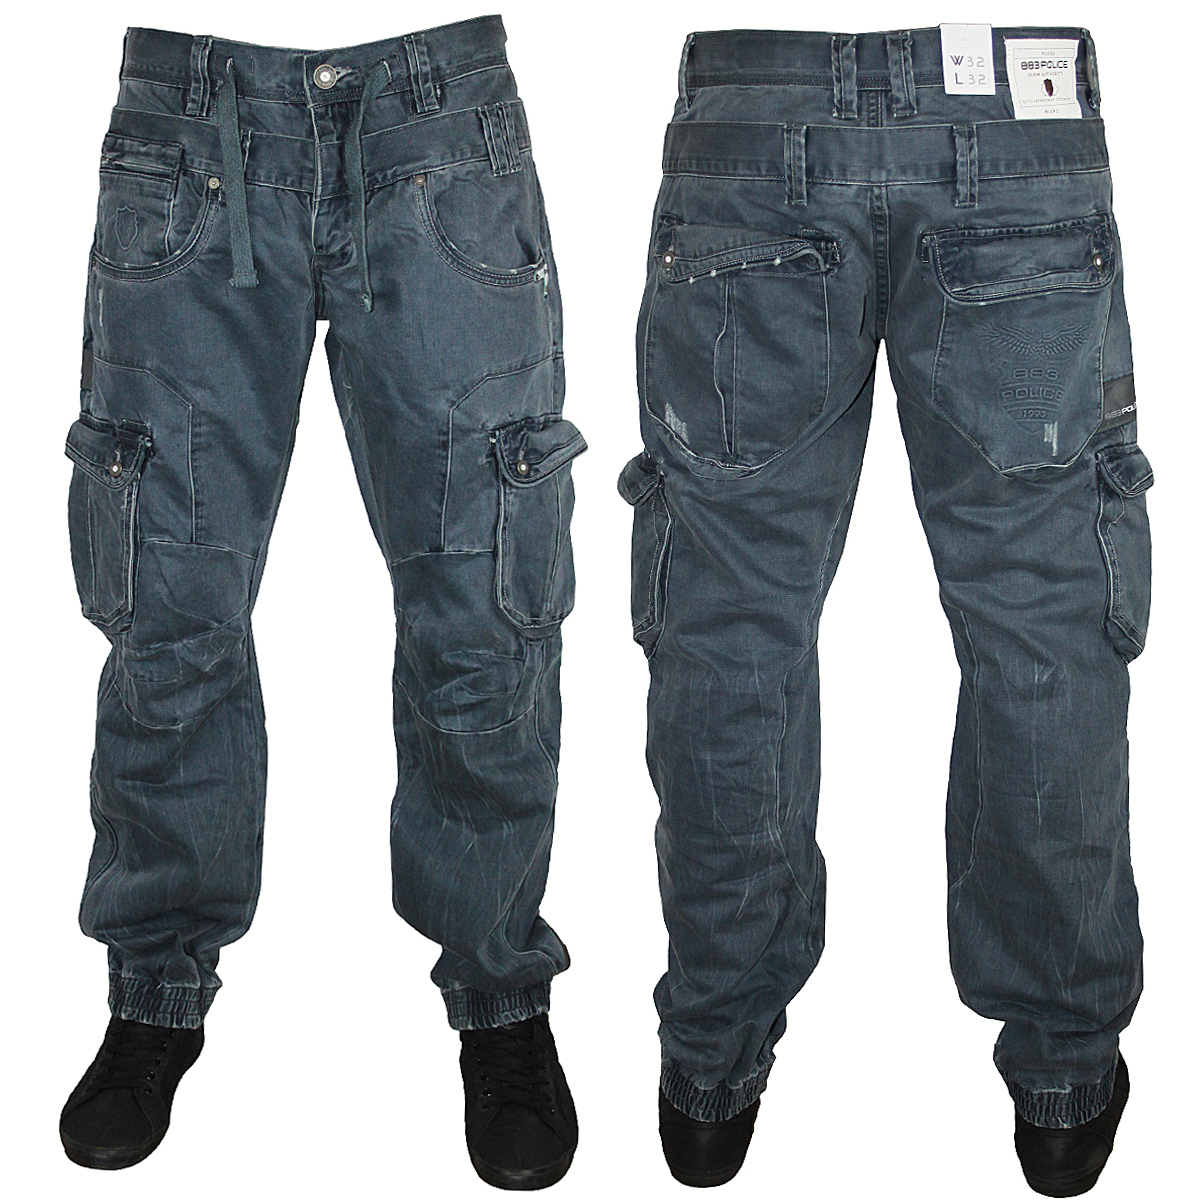 new mens blue 883 police kaluga tapered cuffed cargo jeans